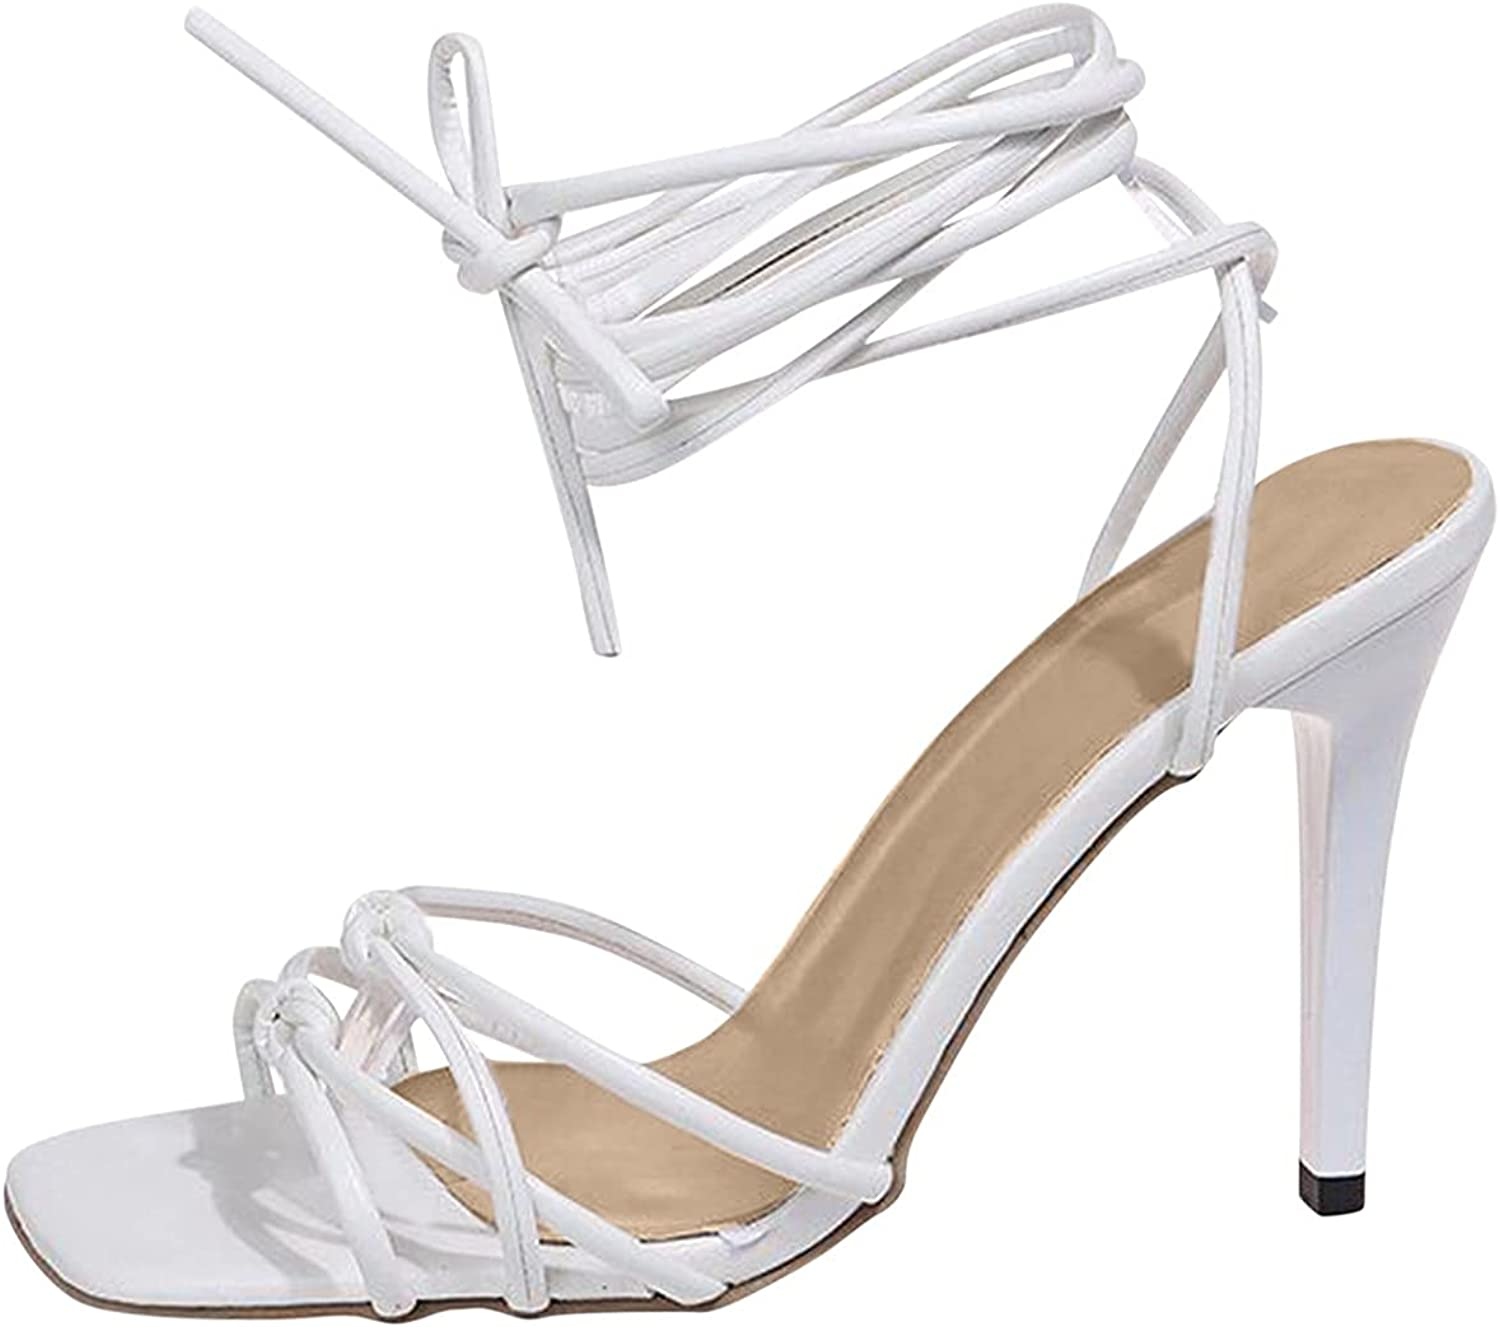 Gyouanime Stilettos for Wholesale Women Sexy Heels Op Sandals Strappy high OFFicial site